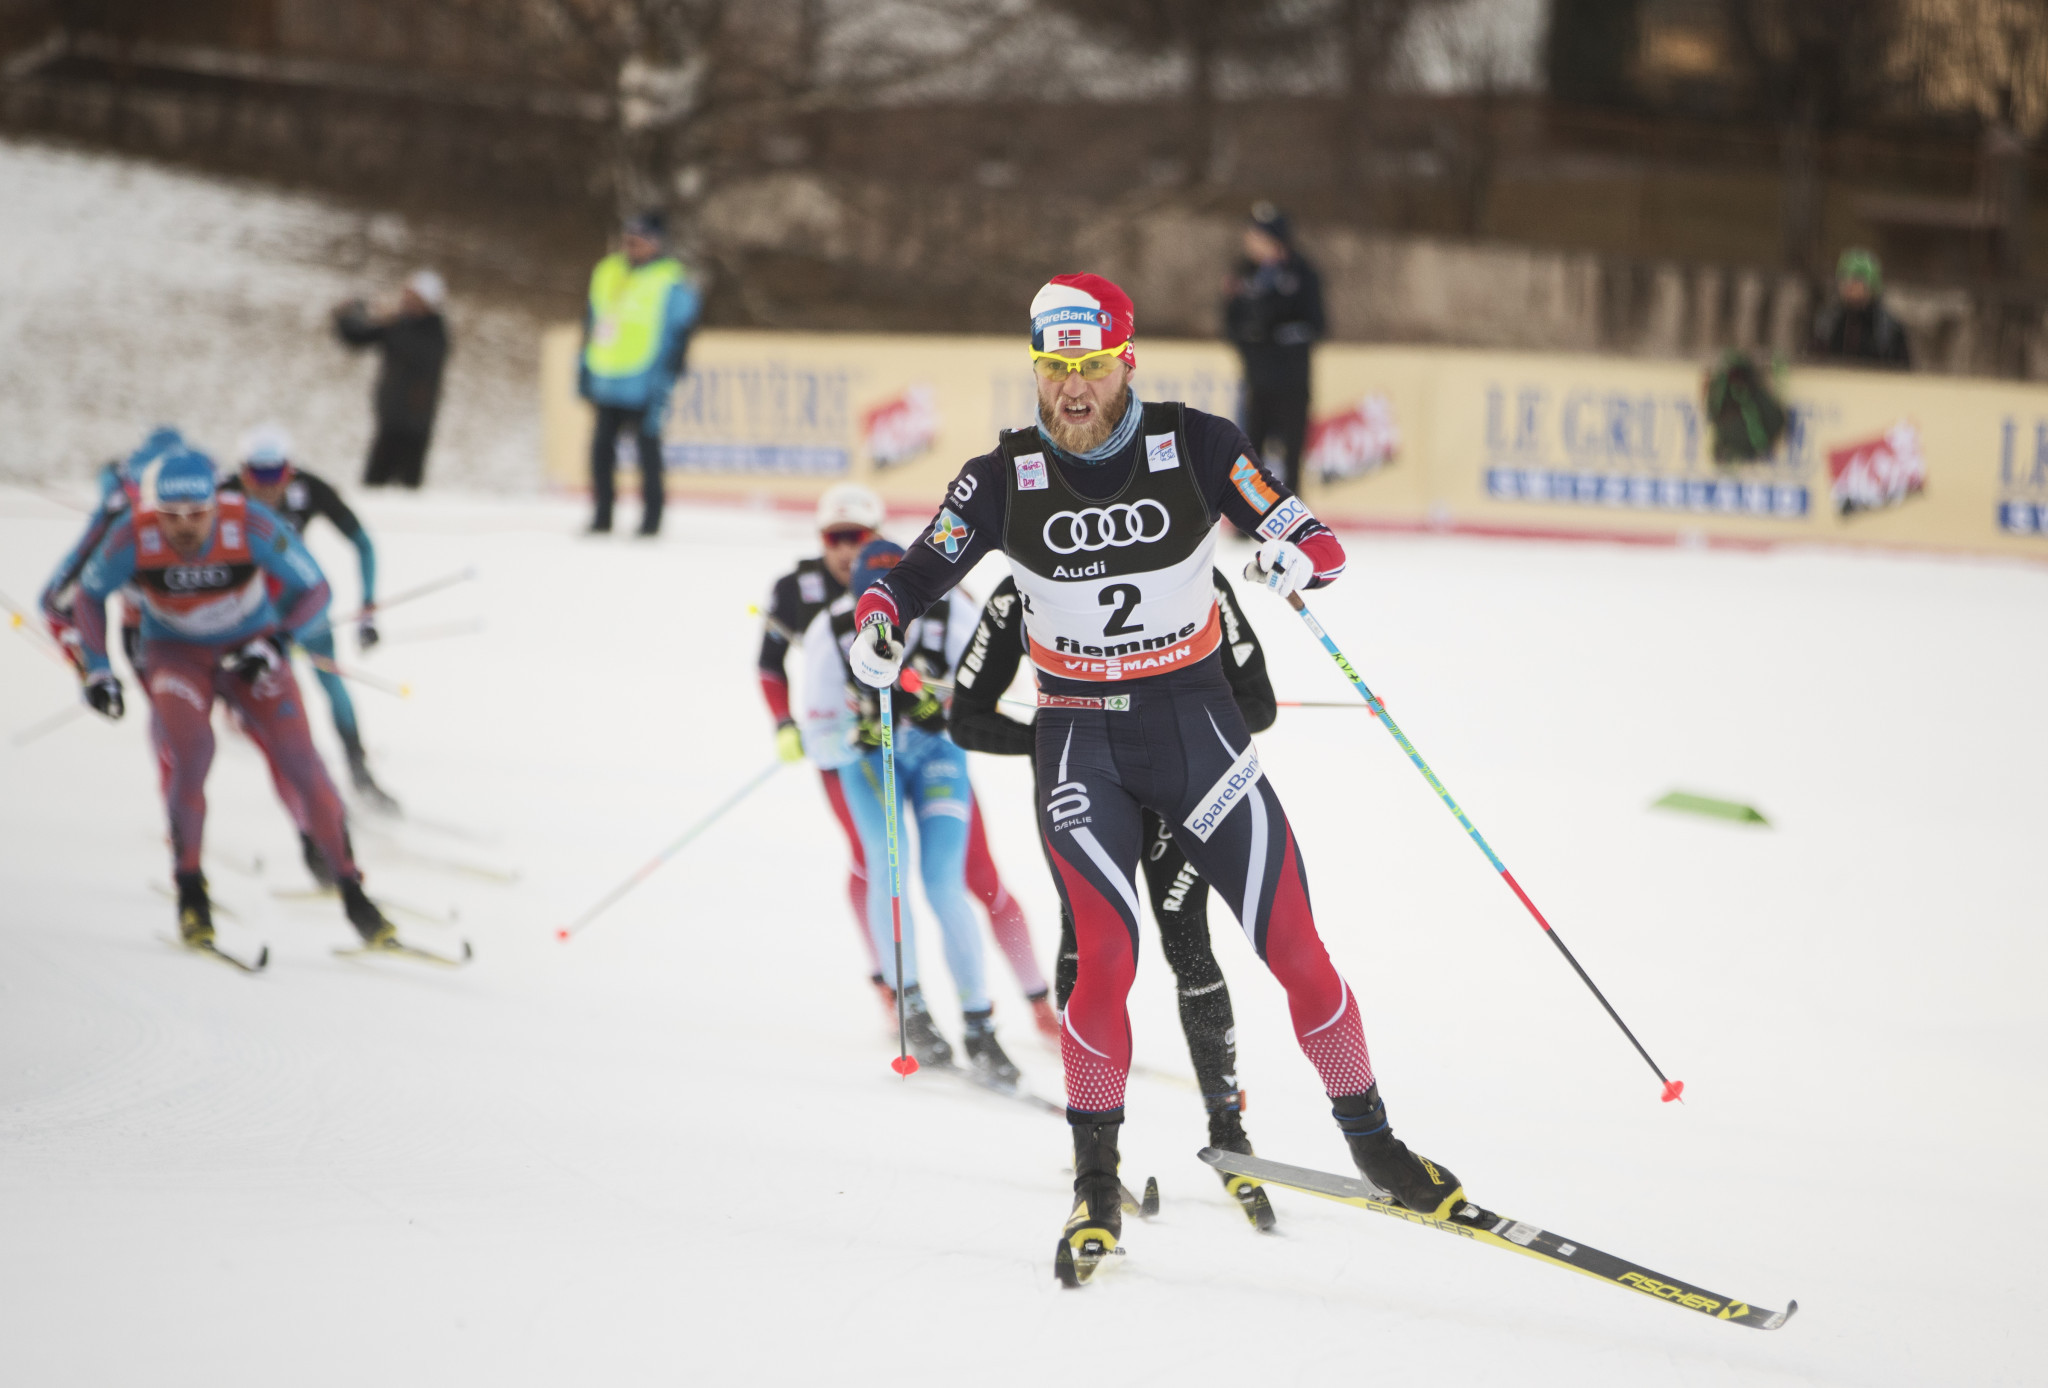 New prize money distribution split approved by FIS Cross-Country Executive Board